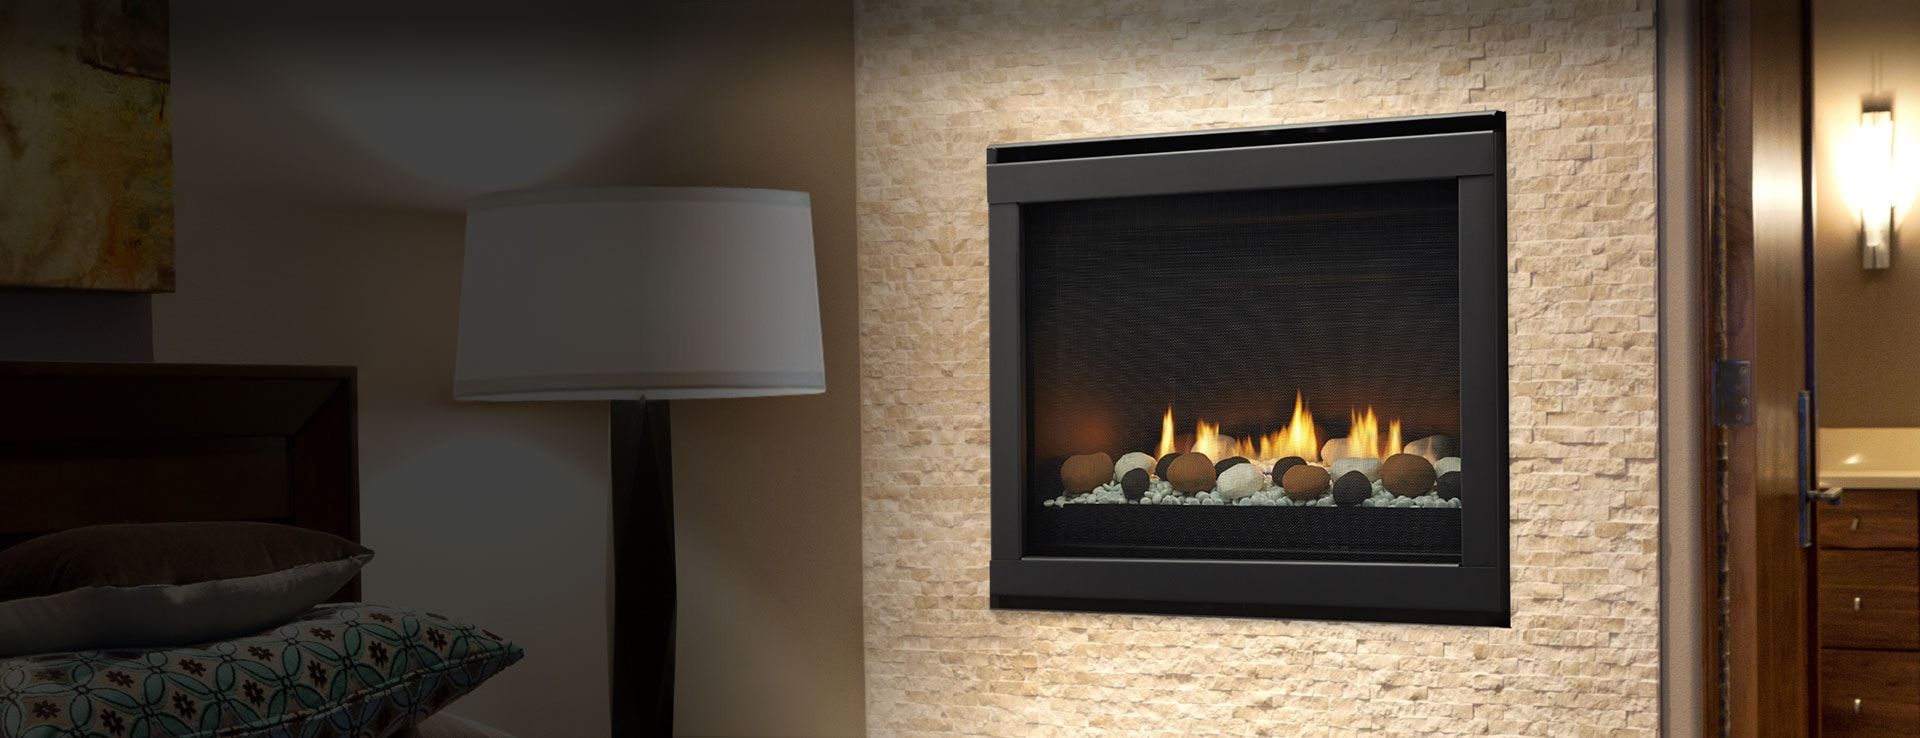 Heatilator Gas Fireplaces